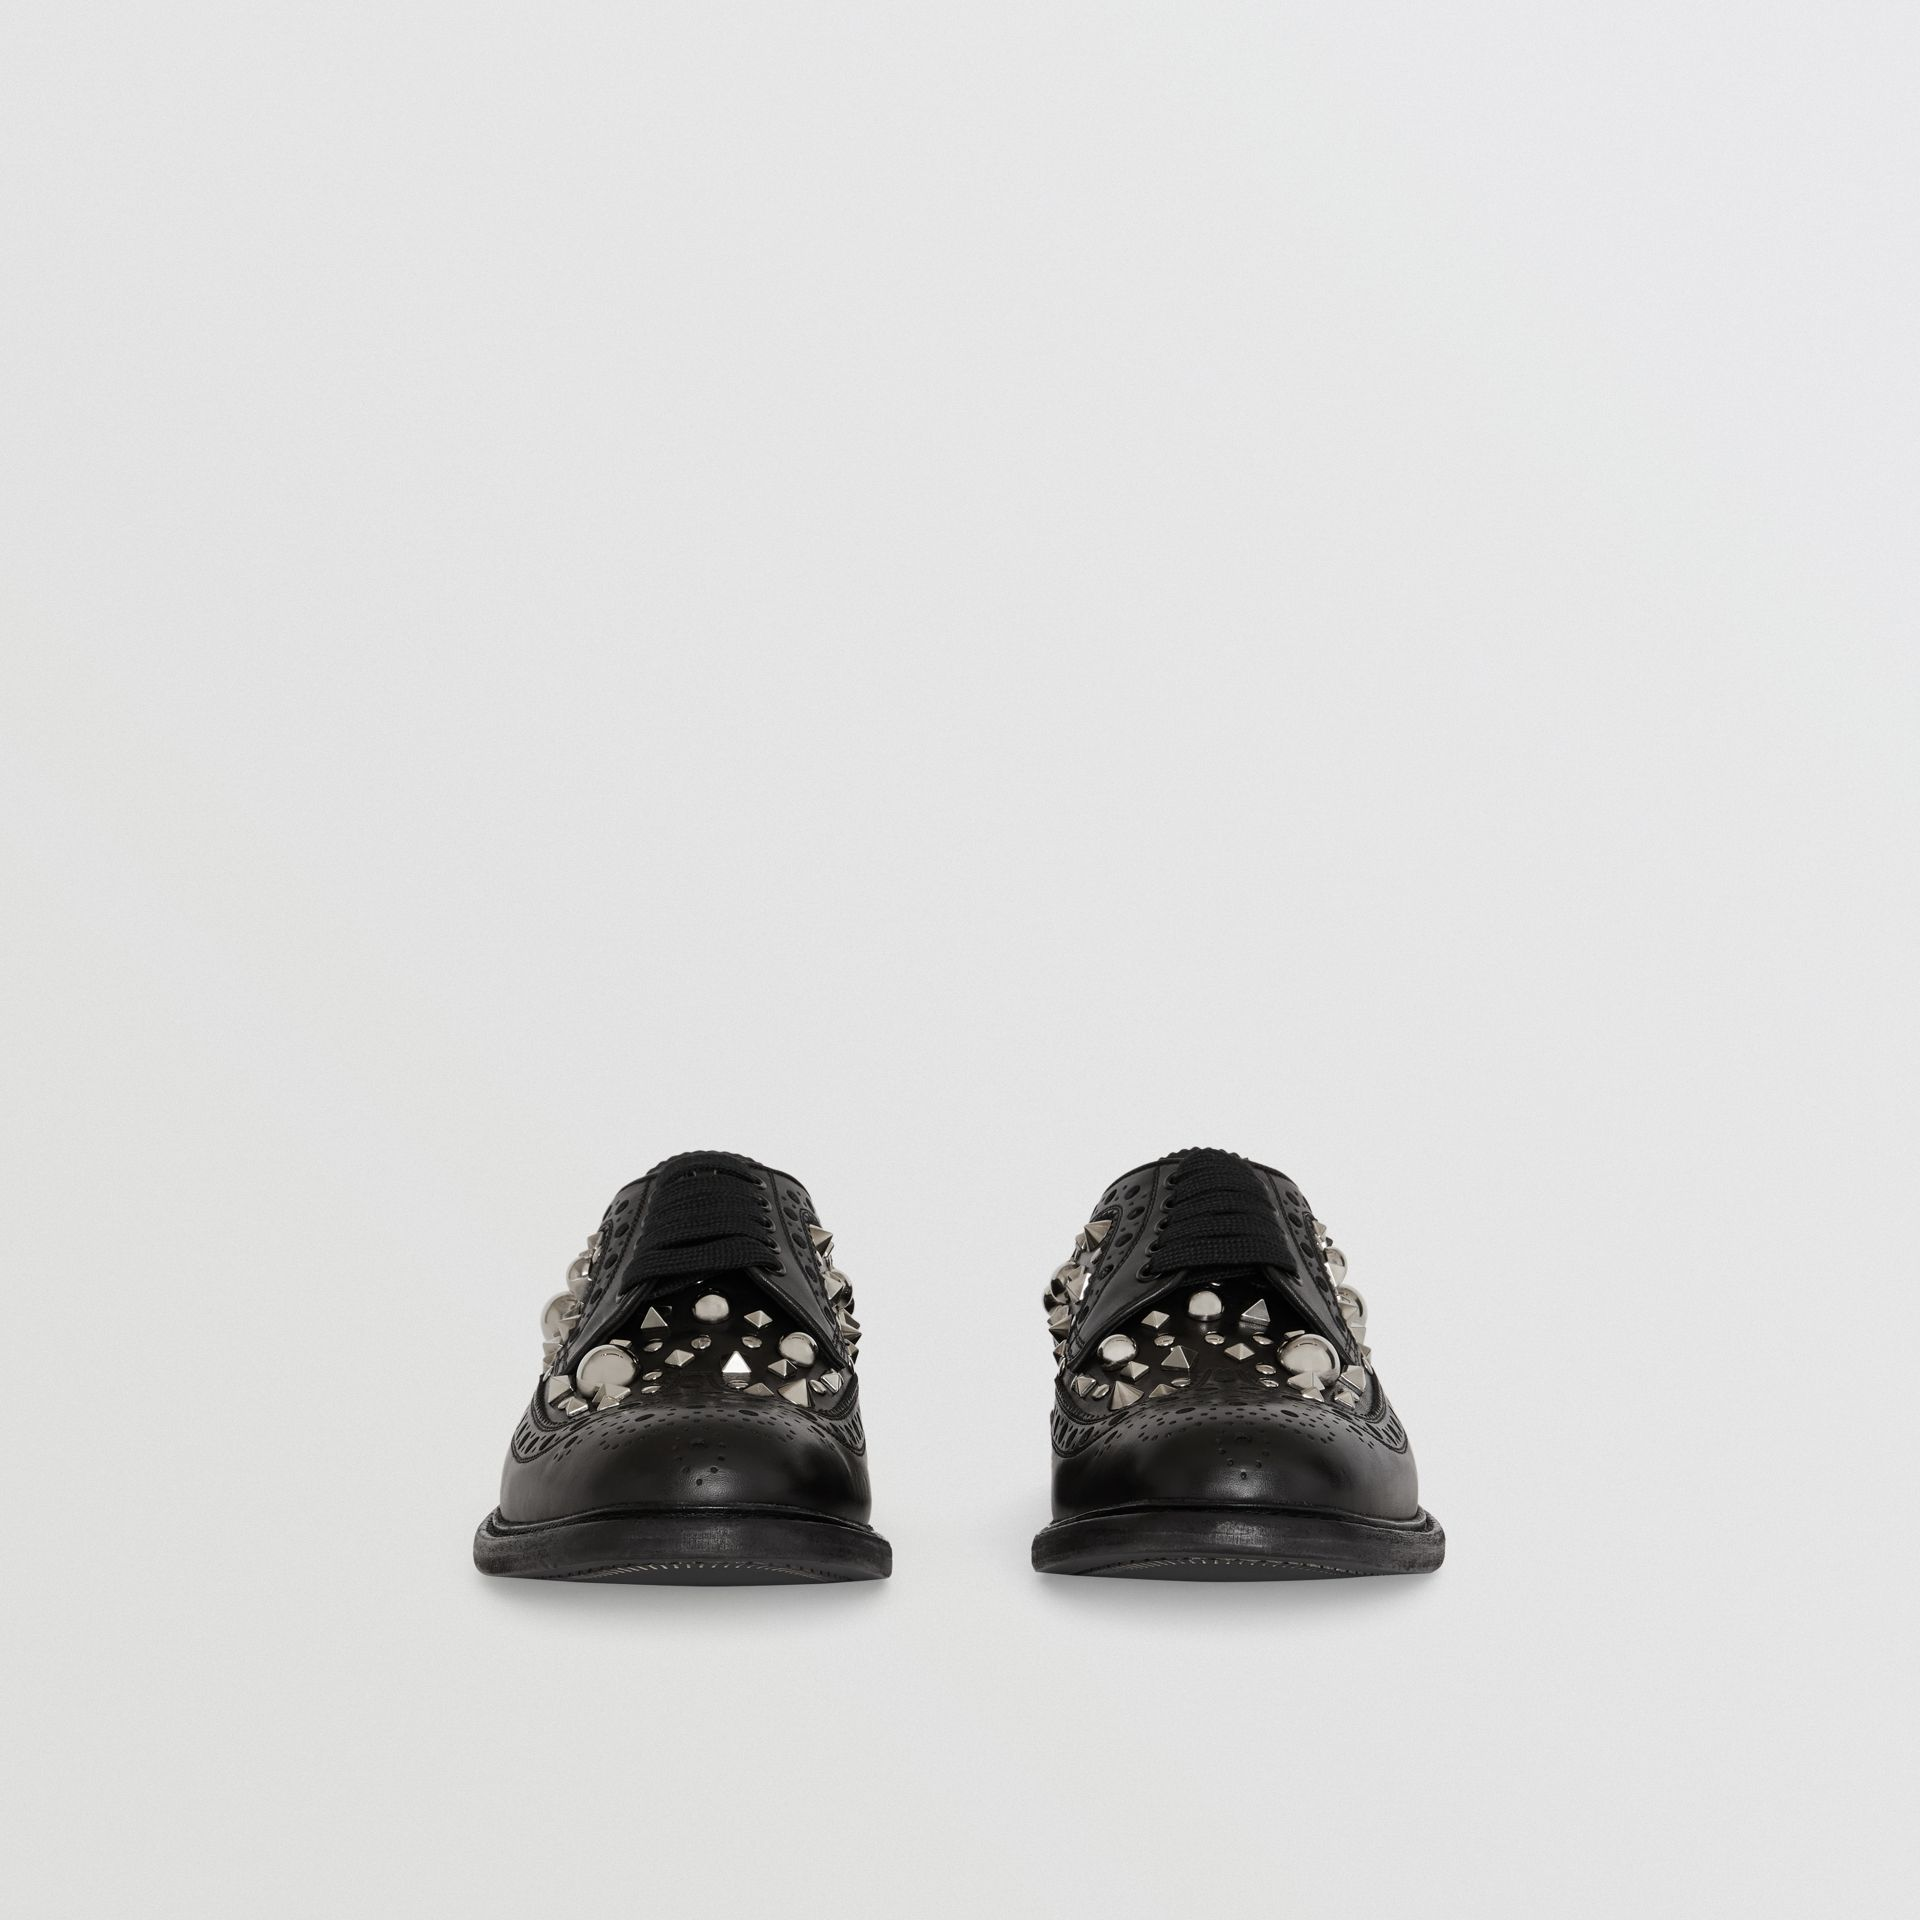 Stud Detail Leather Brogues in Black - Men | Burberry - gallery image 2